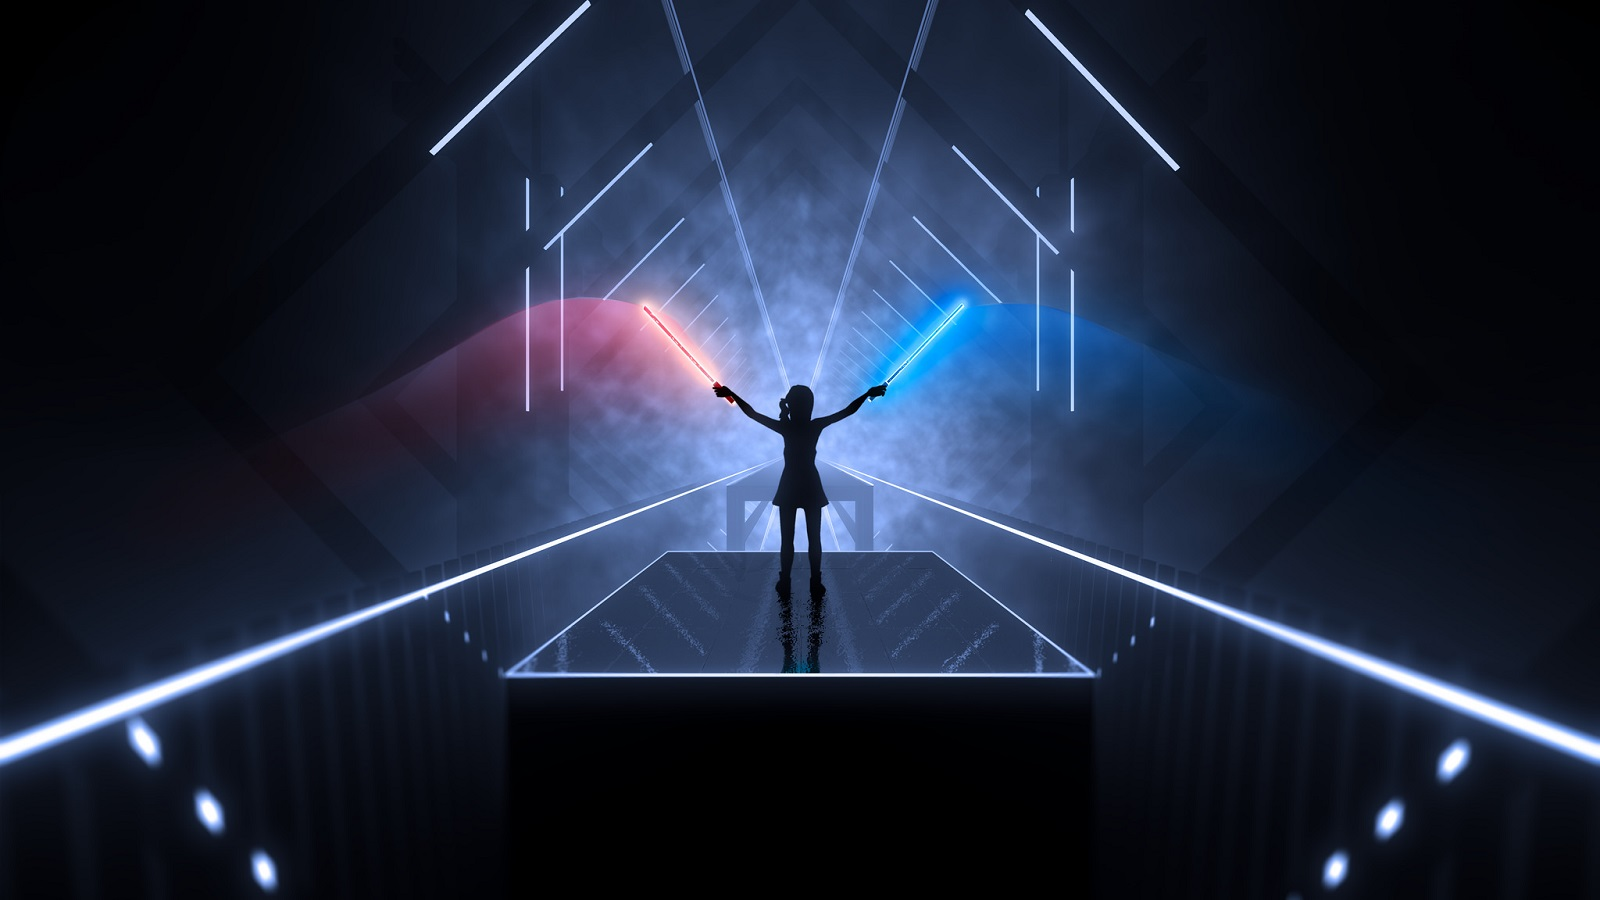 Beat Saber For PSVR Coming On November 20th